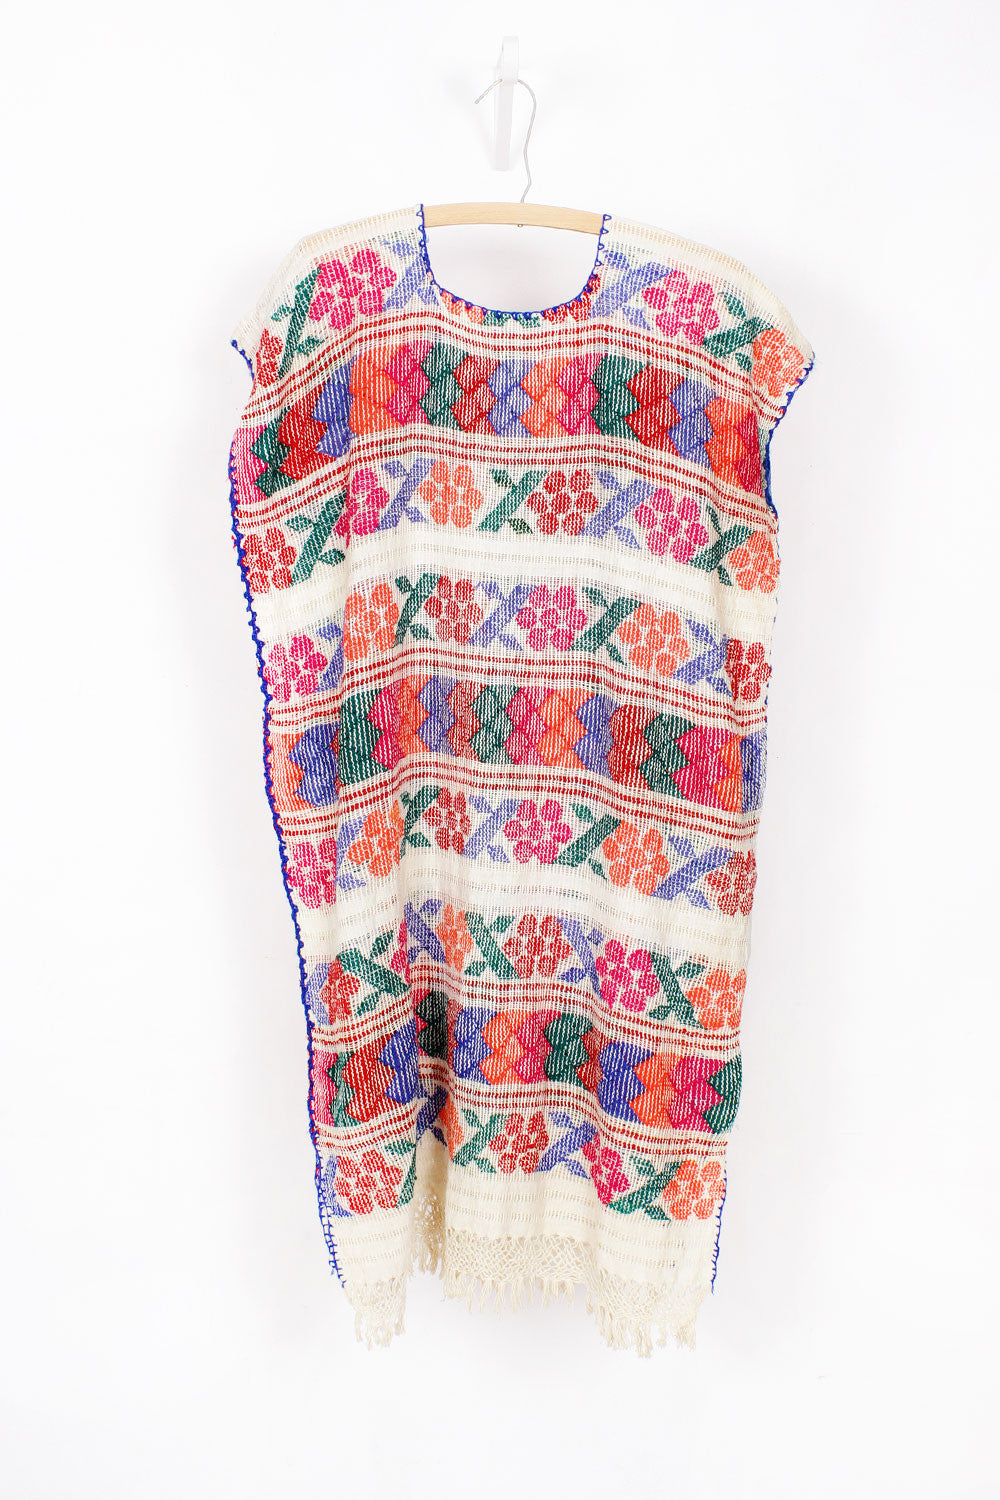 70s Colorful Open Weave Smock Dress